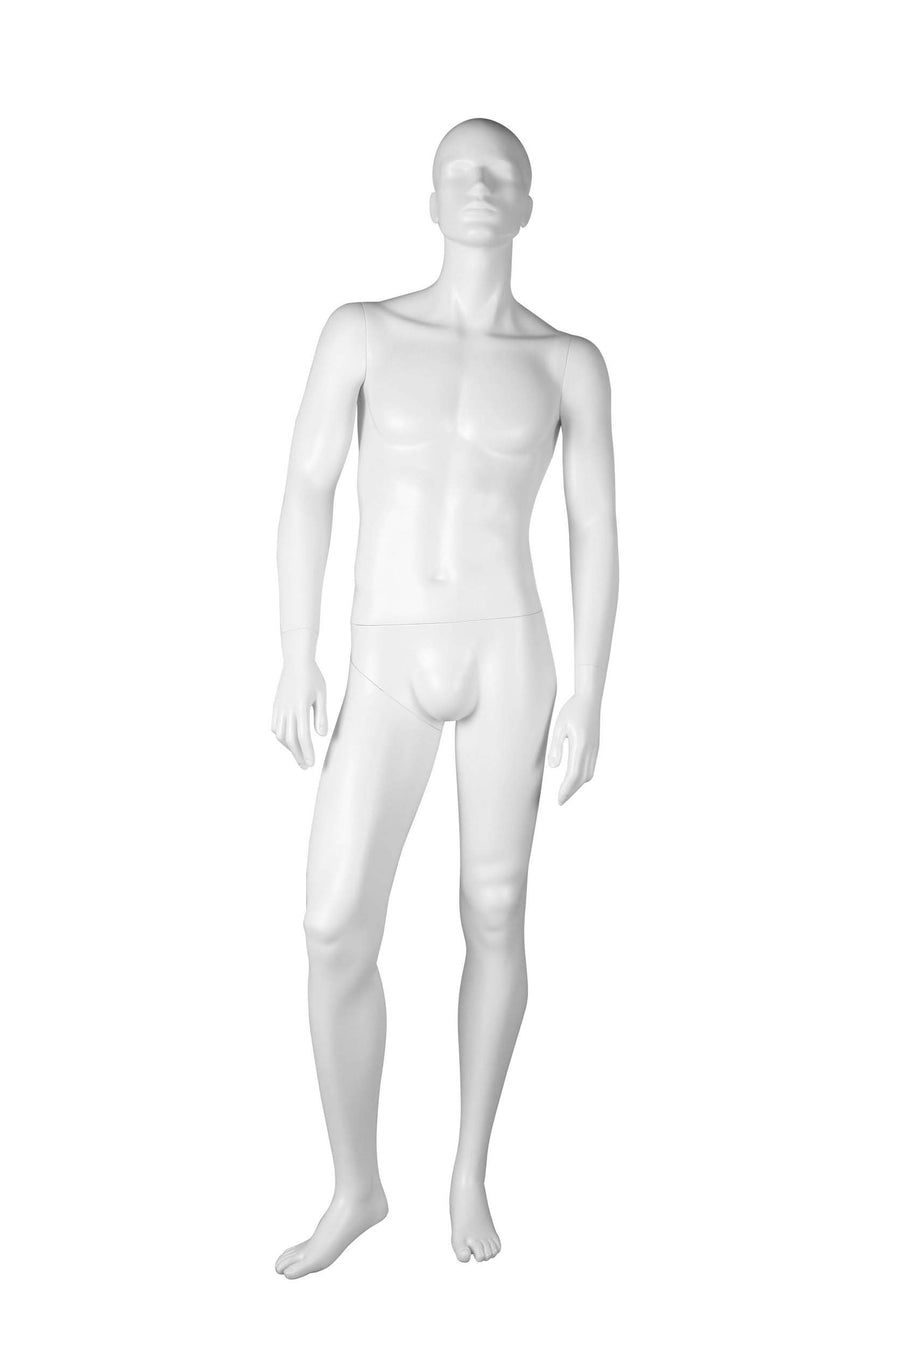 pure white male mannequin with relaxed arms and legs and head looking up